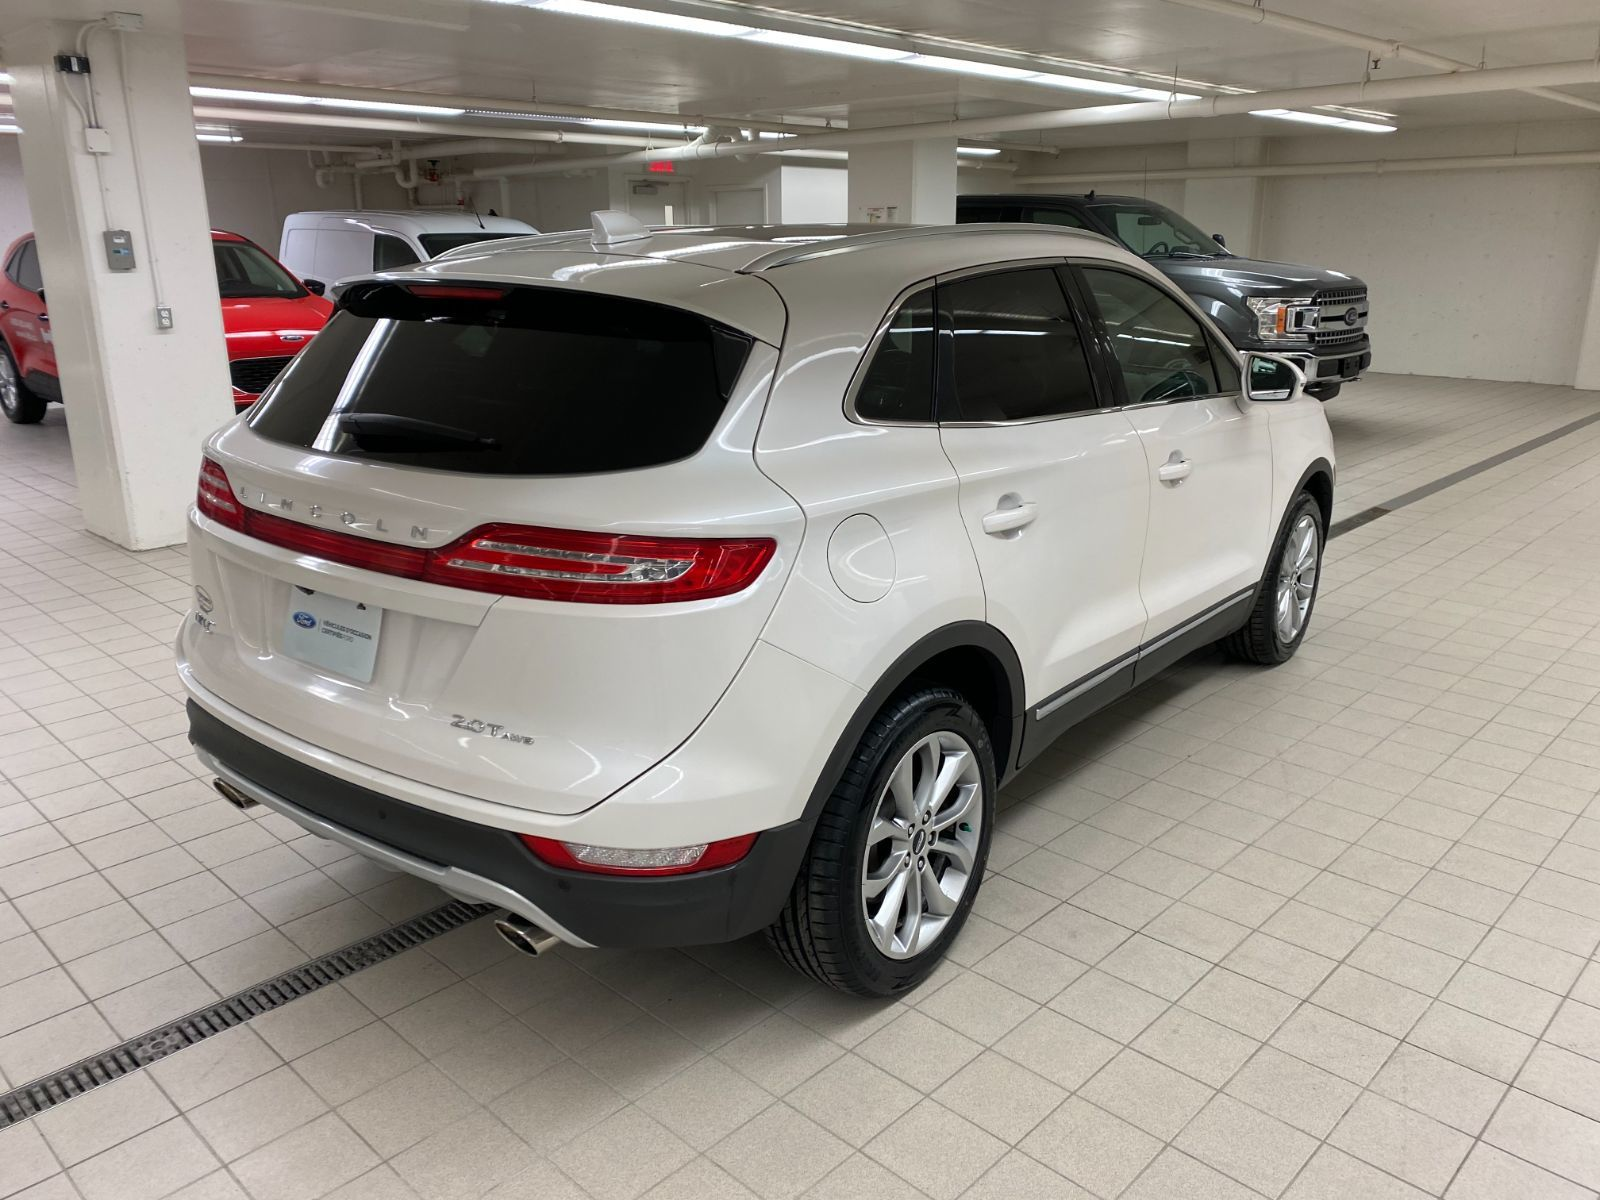 2017 Lincoln MKC complet